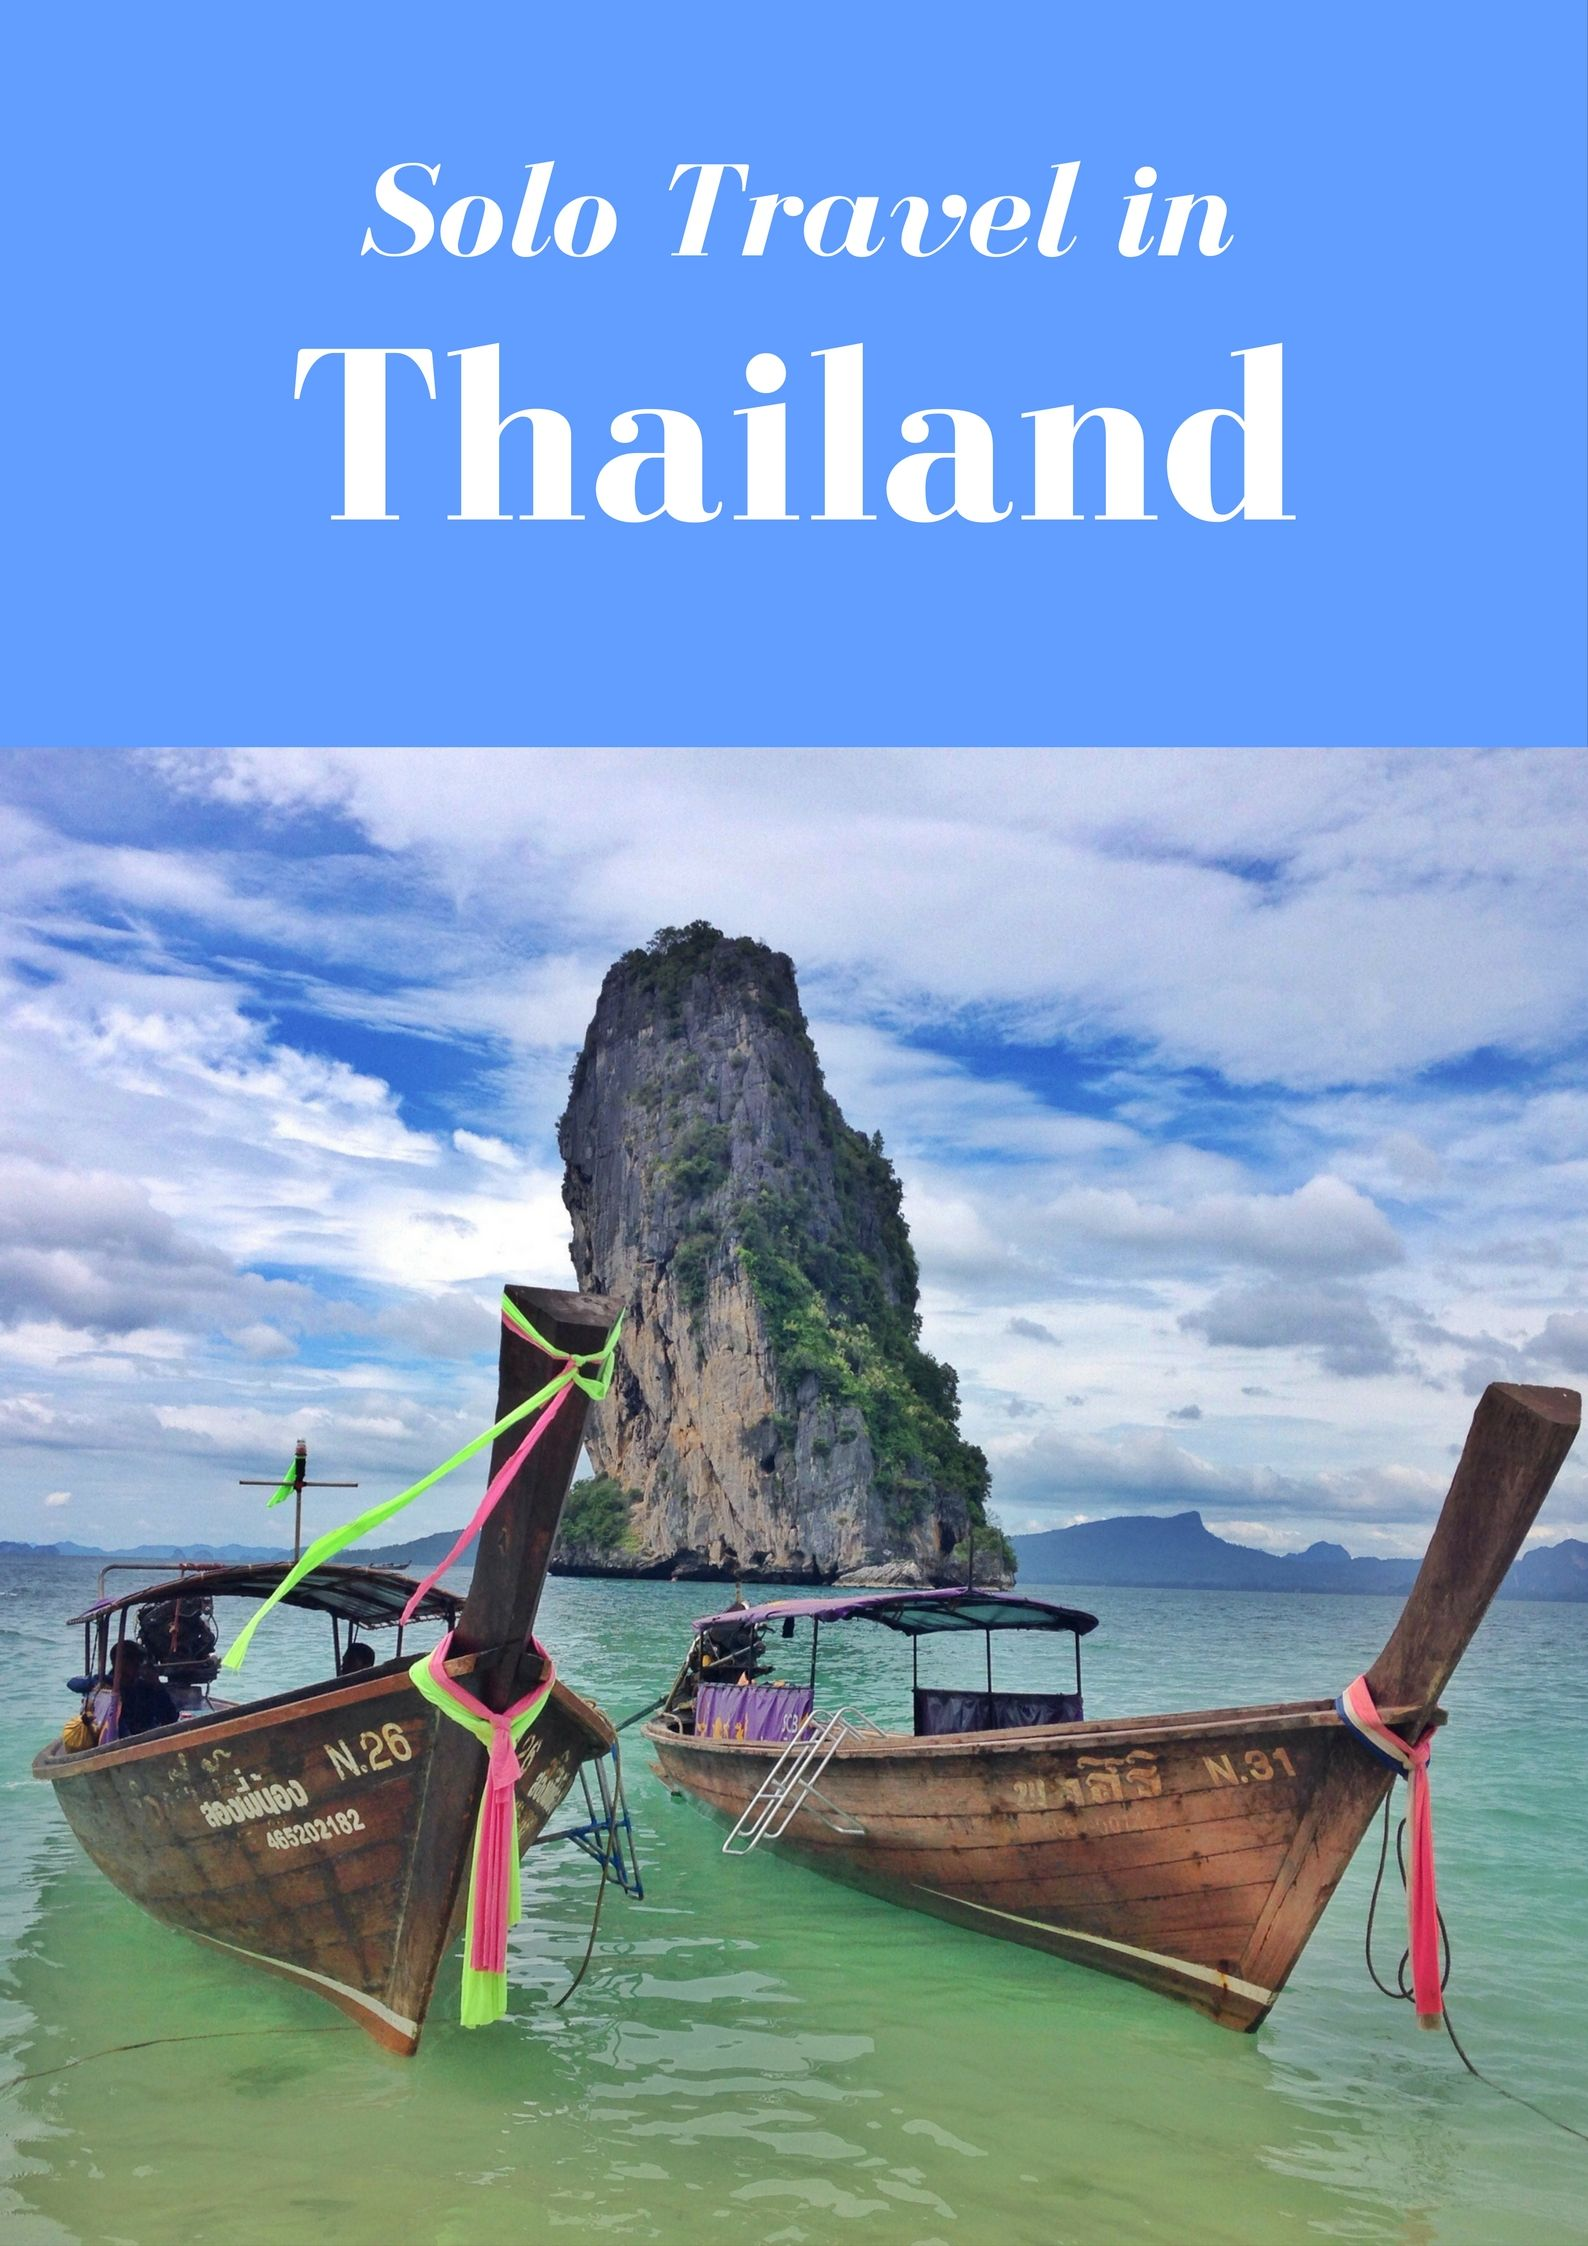 Thailand is an amazing country for solo travellers, here's why.